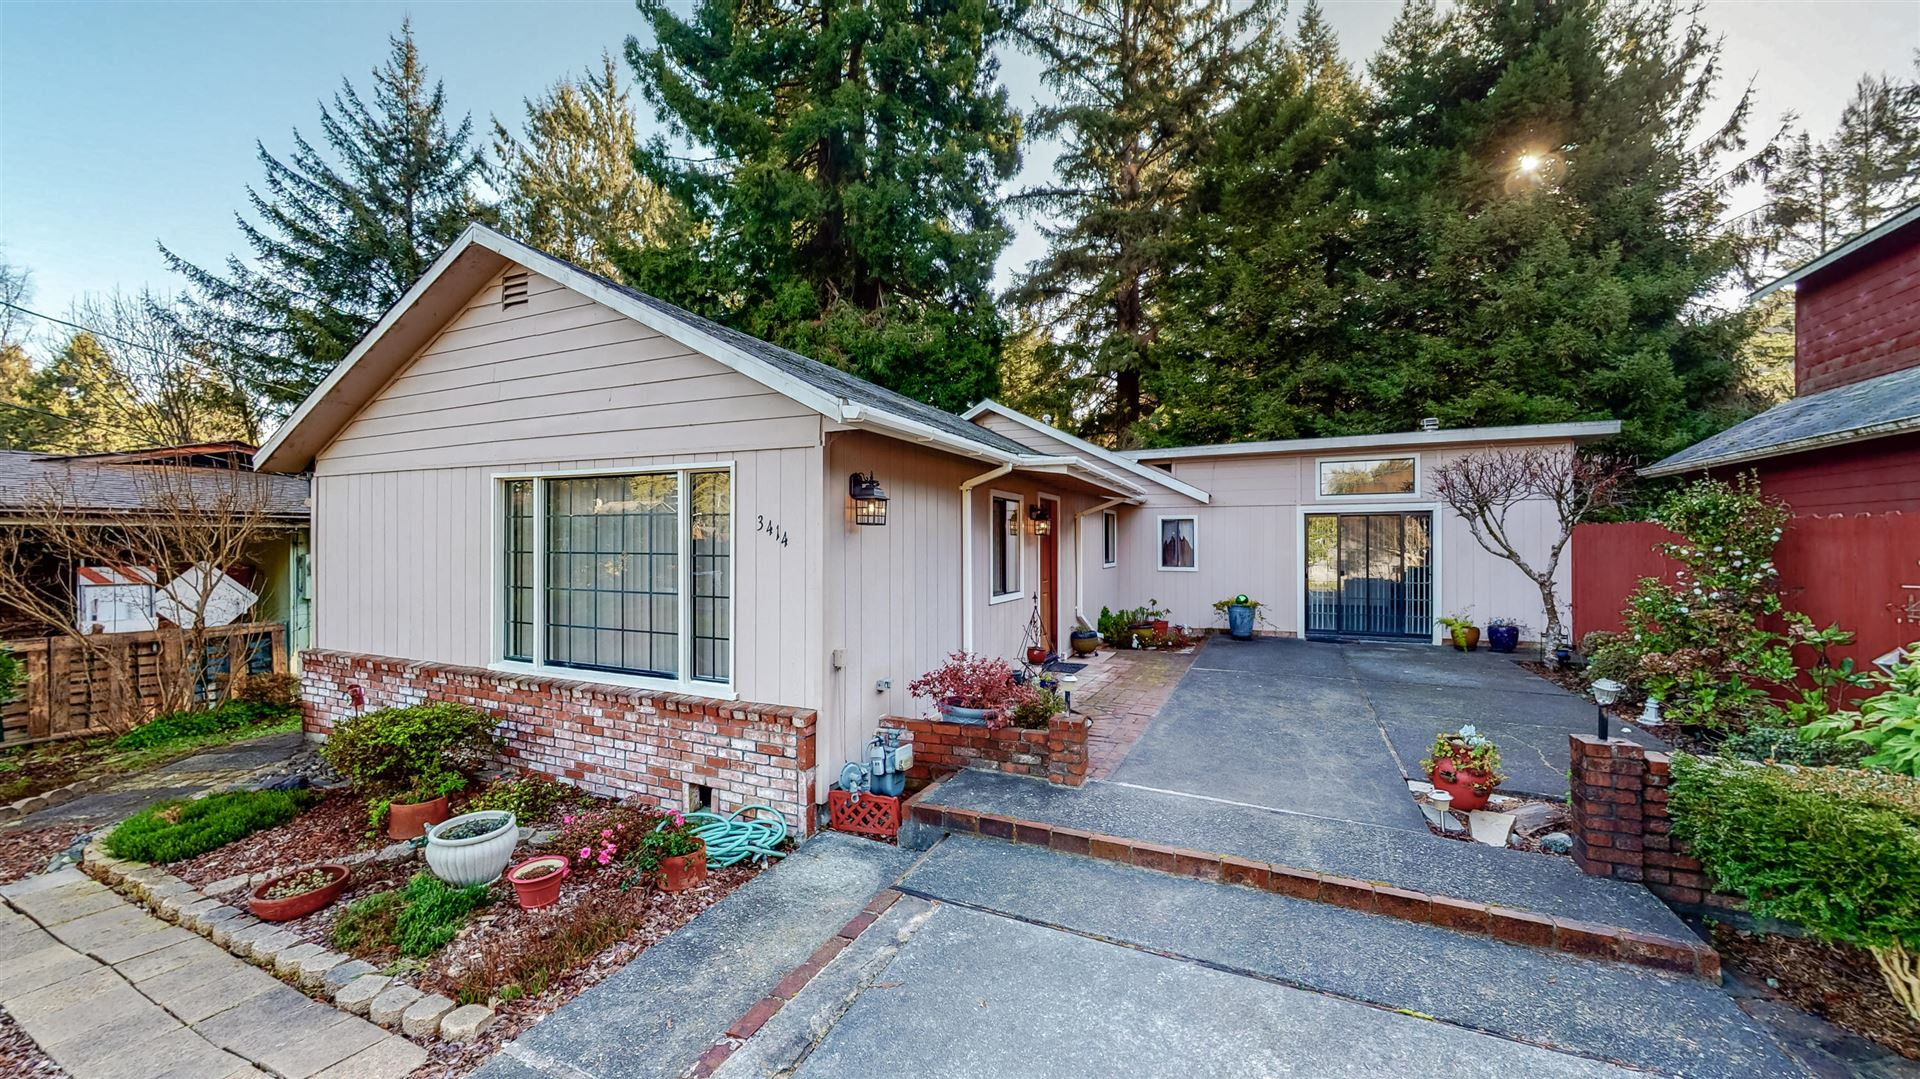 3414 Fern Way, Arcata, CA 95521 - MLS#: 258455